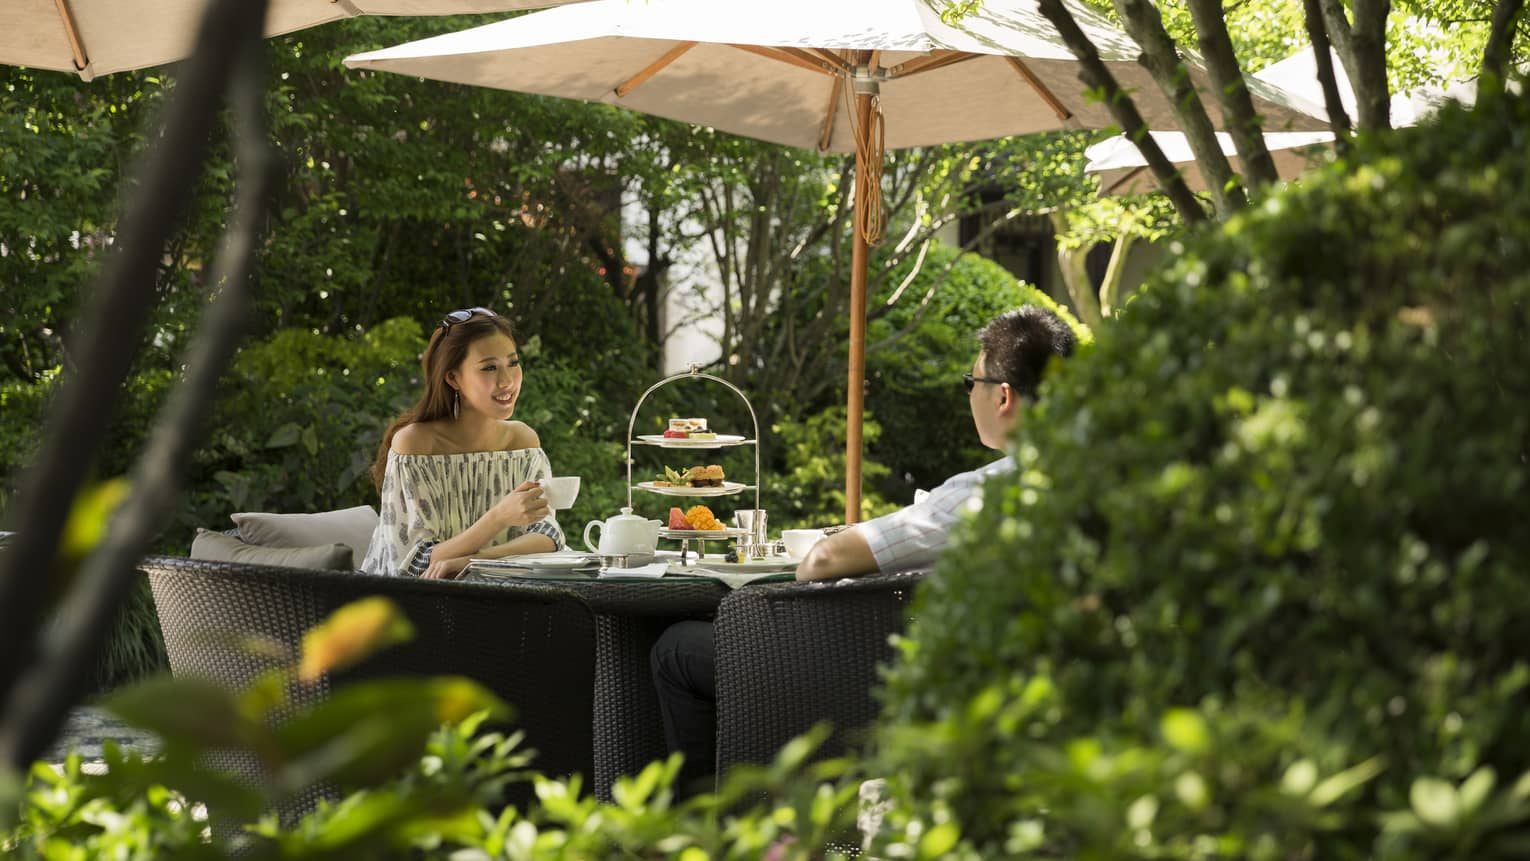 Woman and man drink tea near tray of sweets at table under shade of patio umbrella